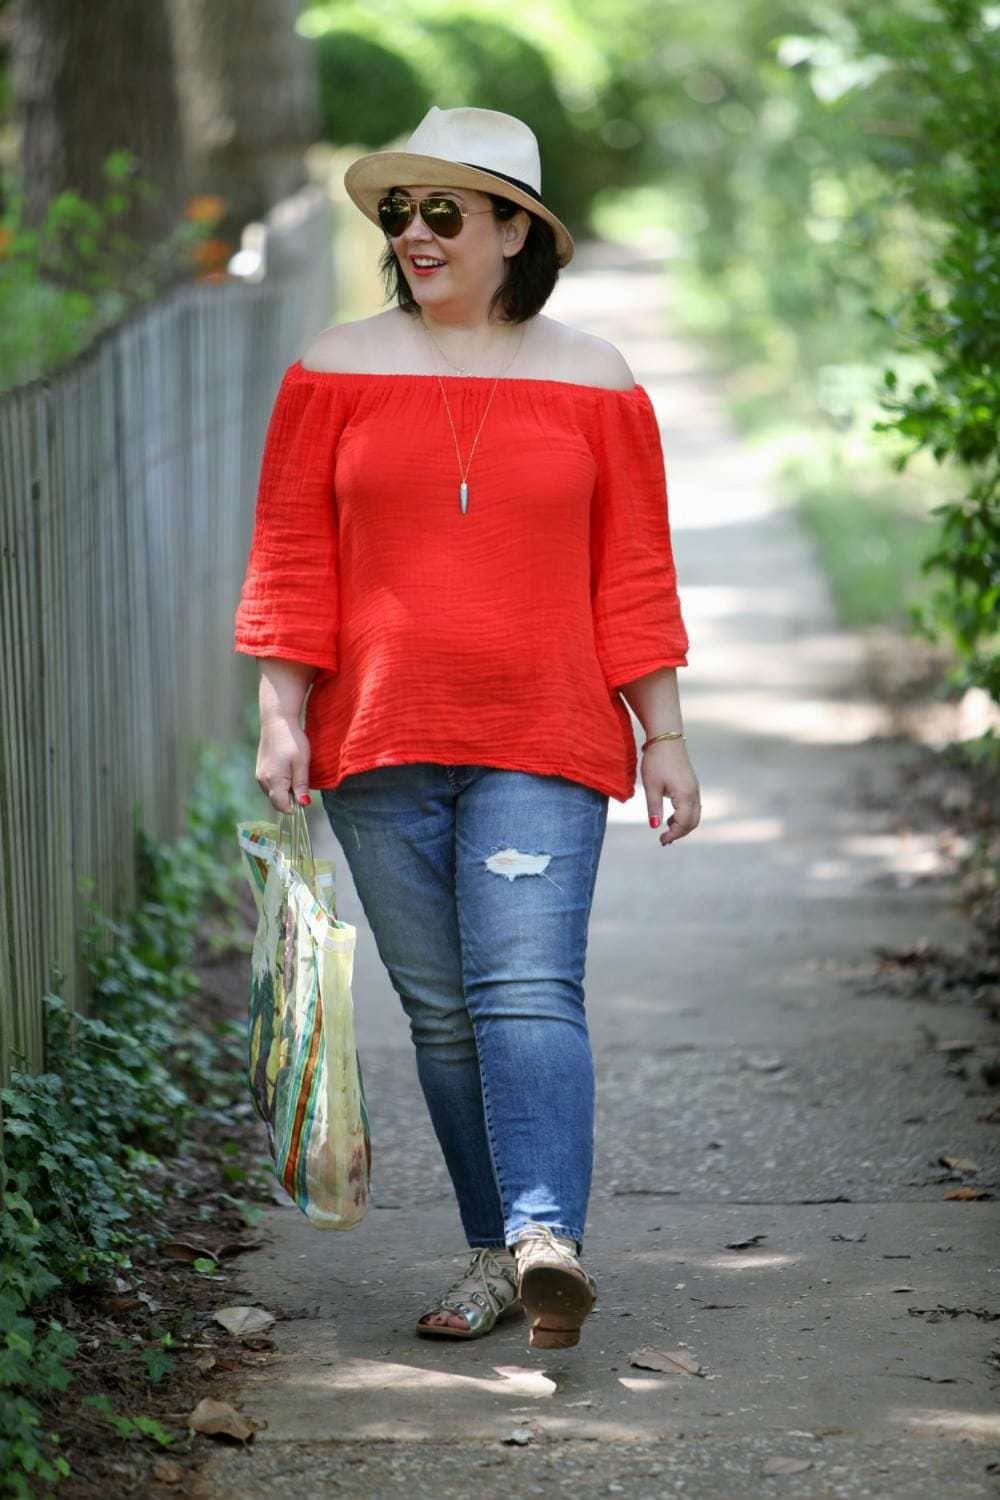 over 40 fashion blog wardrobe oxygen in gap jeans and michael stars top